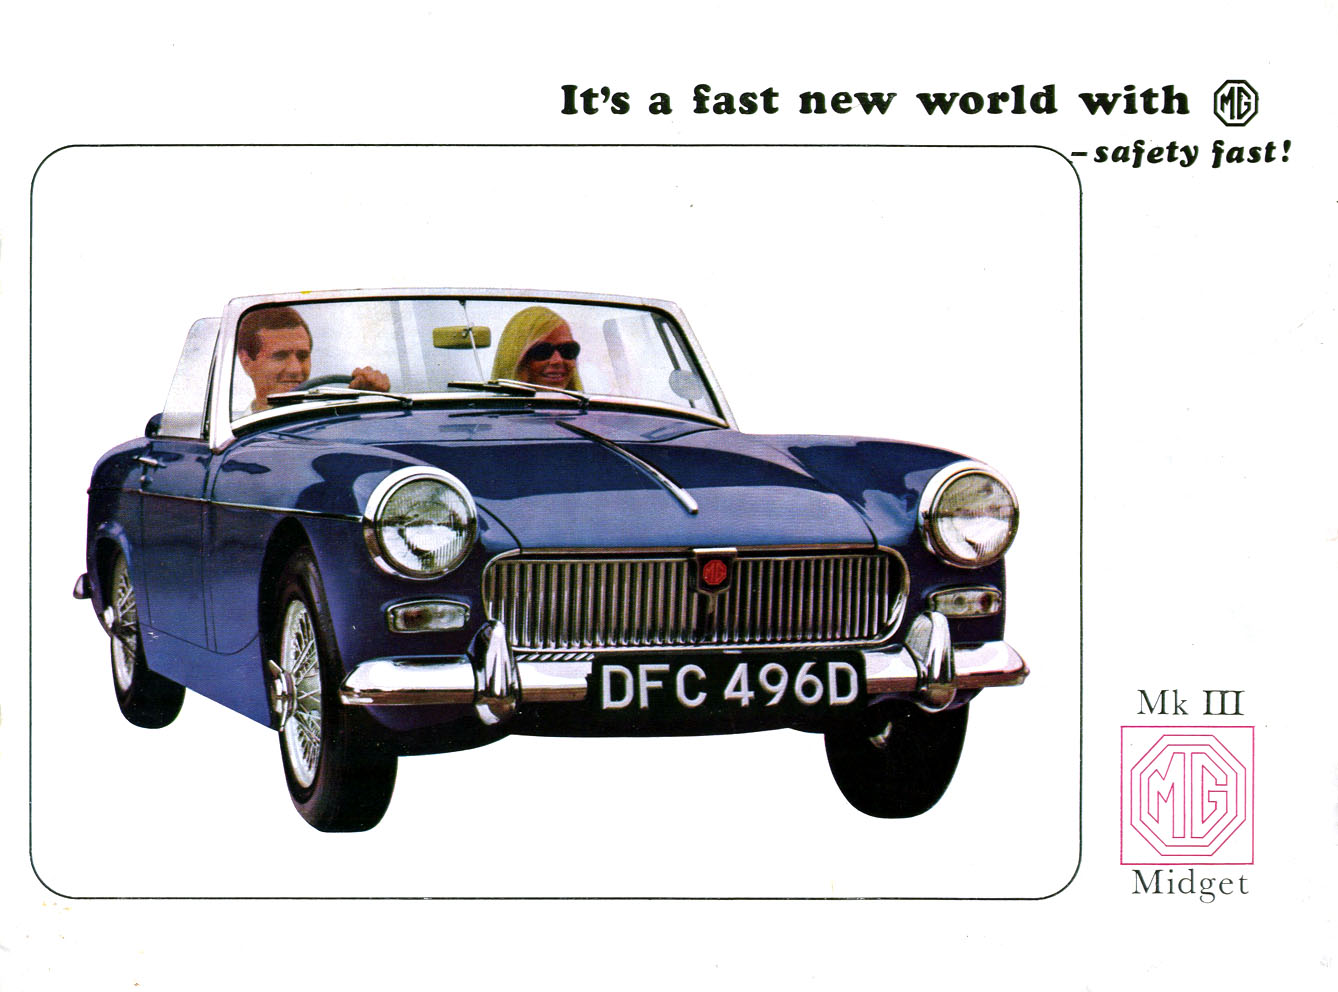 Mg midget brochure opinion